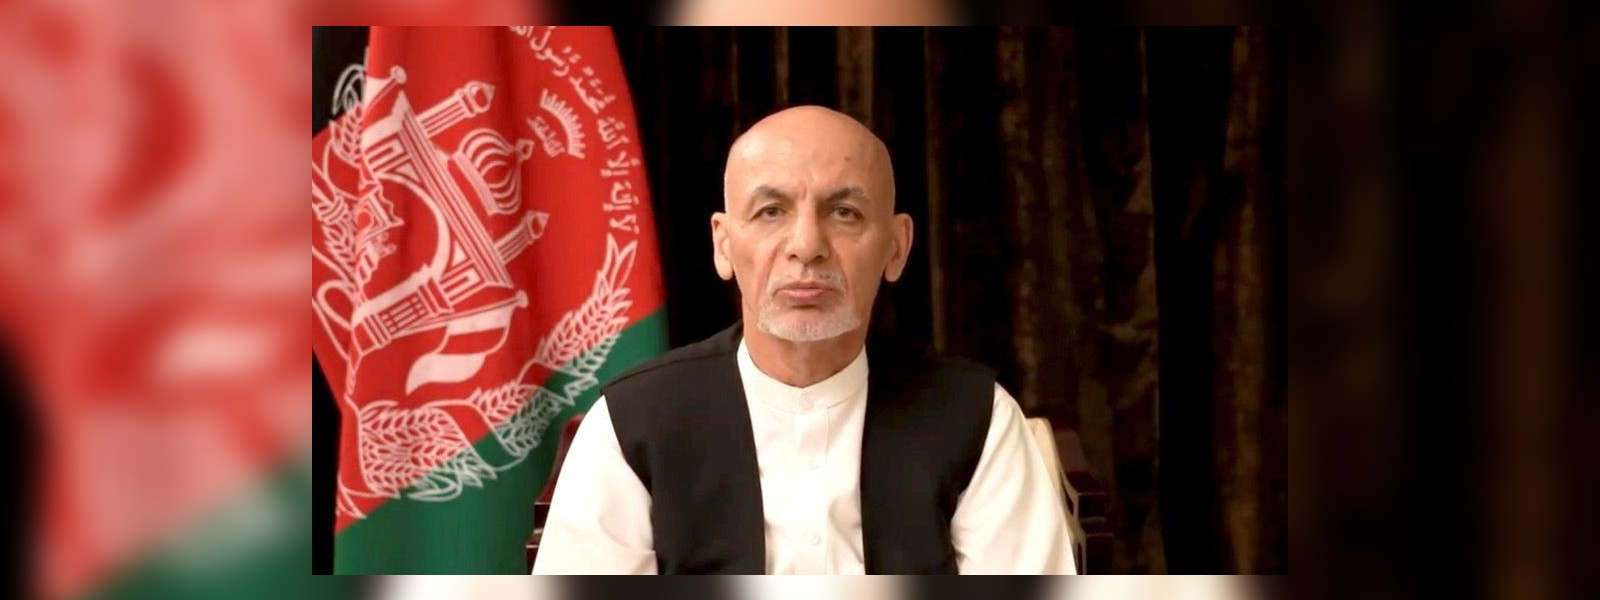 Afghan President apologizes for fleeing, denies reports of taking funds